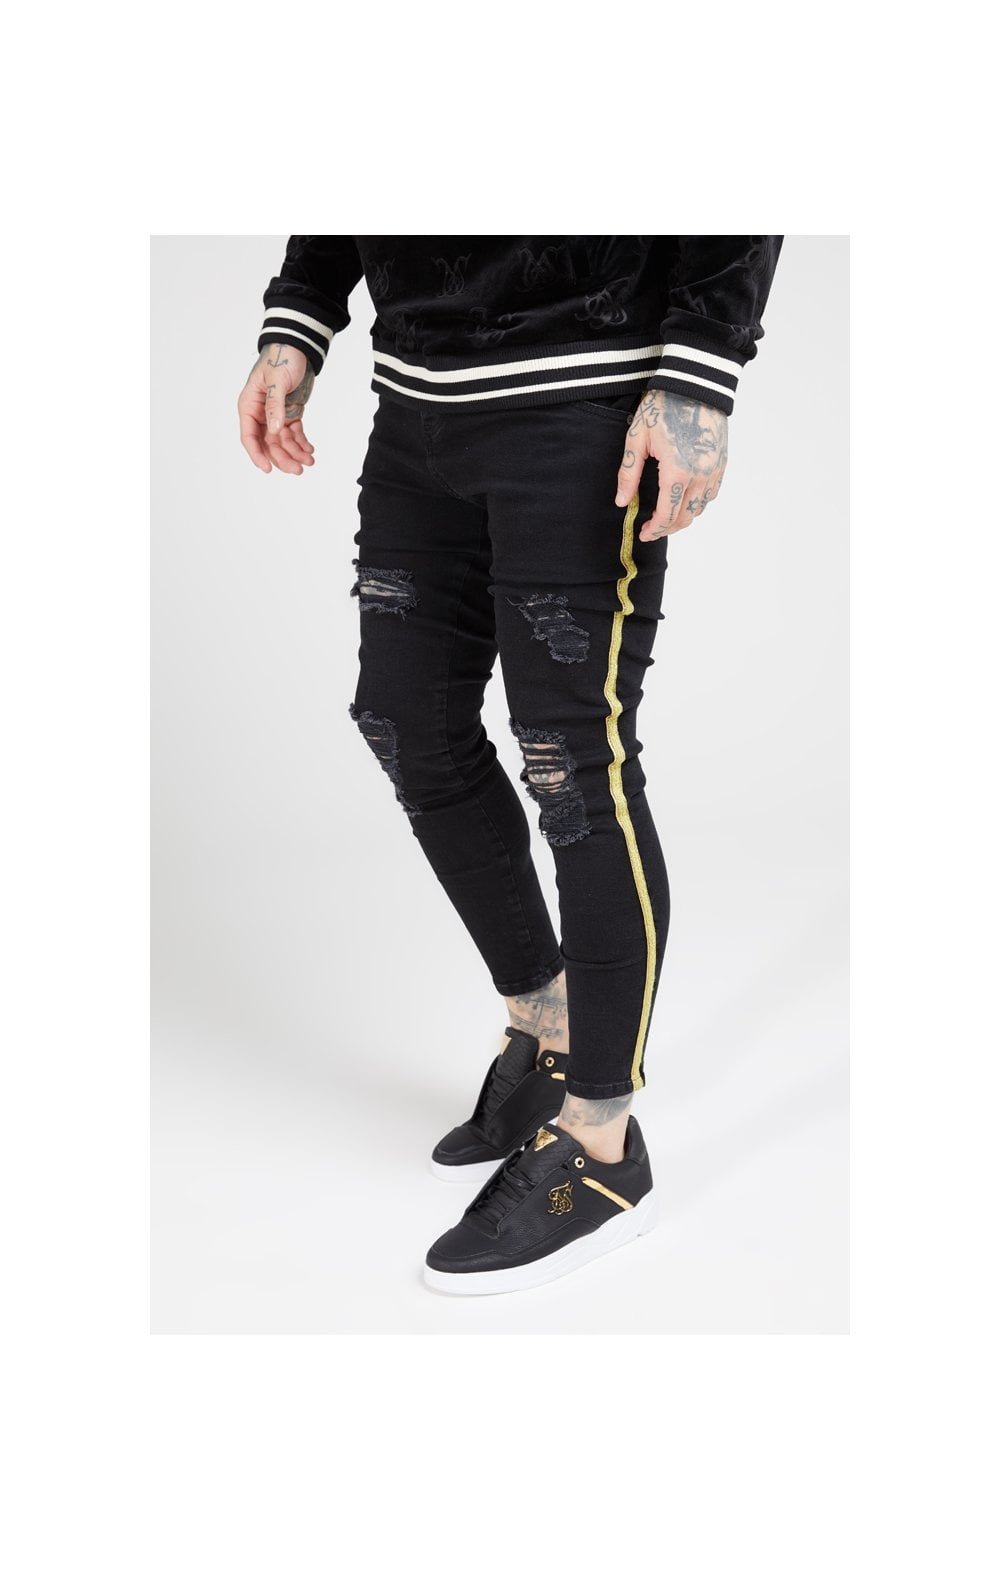 Load image into Gallery viewer, SikSilk Distressed Skinny Taped Denims - Washed Black (1)